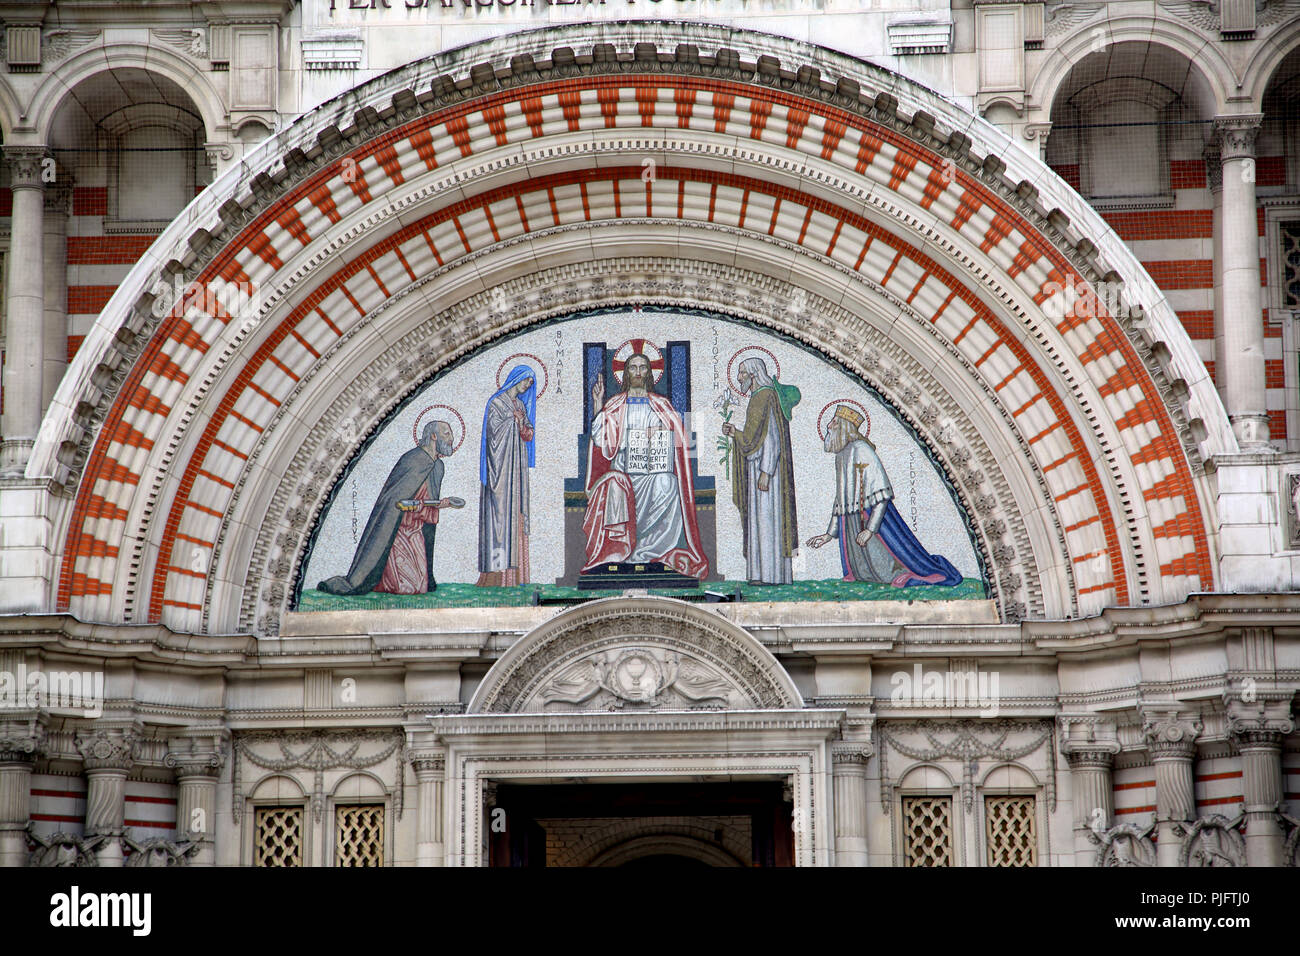 Victoria London England Westminster Cathedral North West Portal Arch Tympanum shows Mosaic depicting Saint Peter, Virgin Mary, Jesus Christ as Pantocr - Stock Image